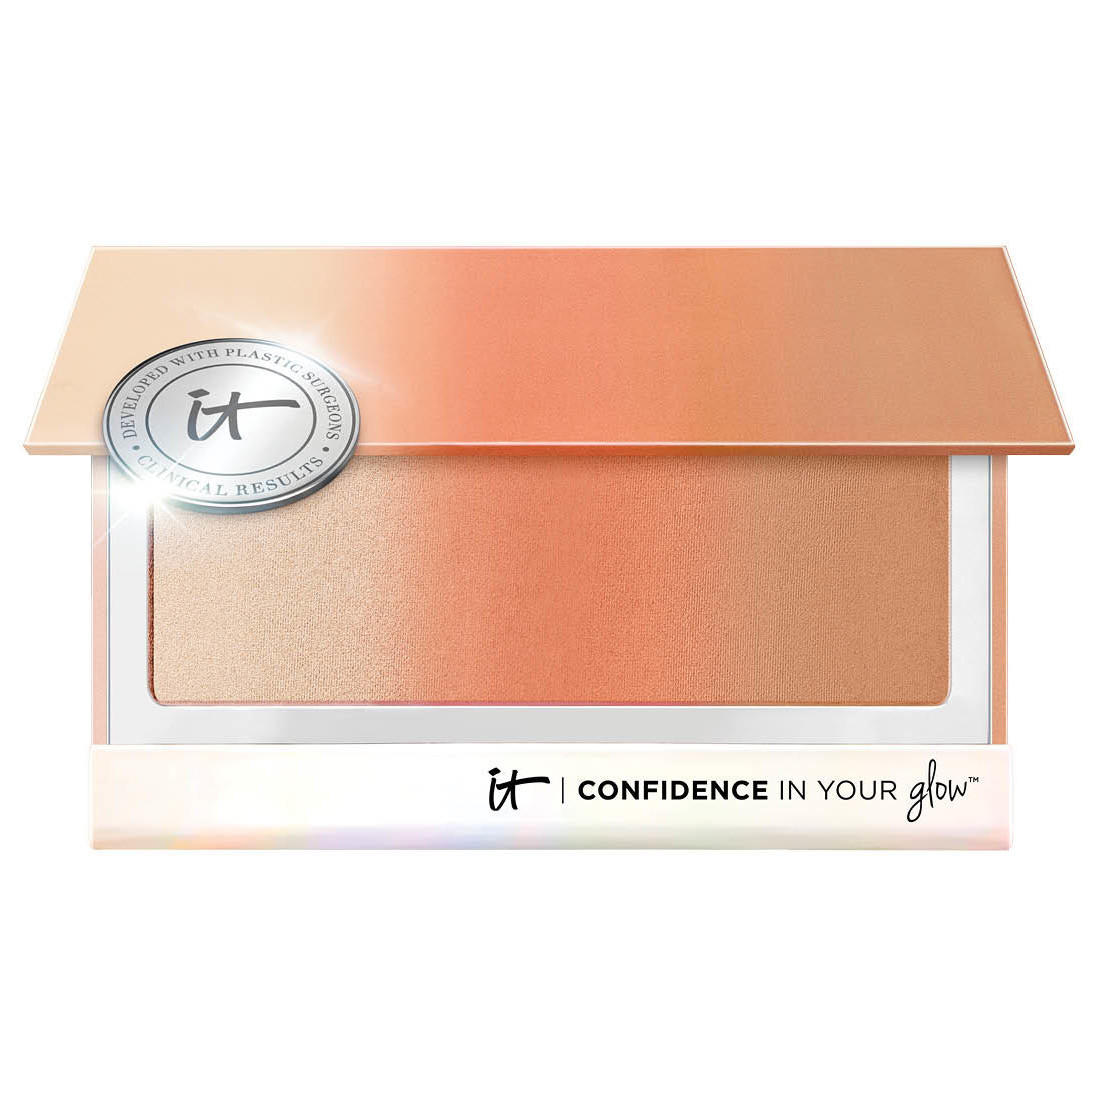 It Cosmetics Confidence In Your Glow Instant Nude Glow